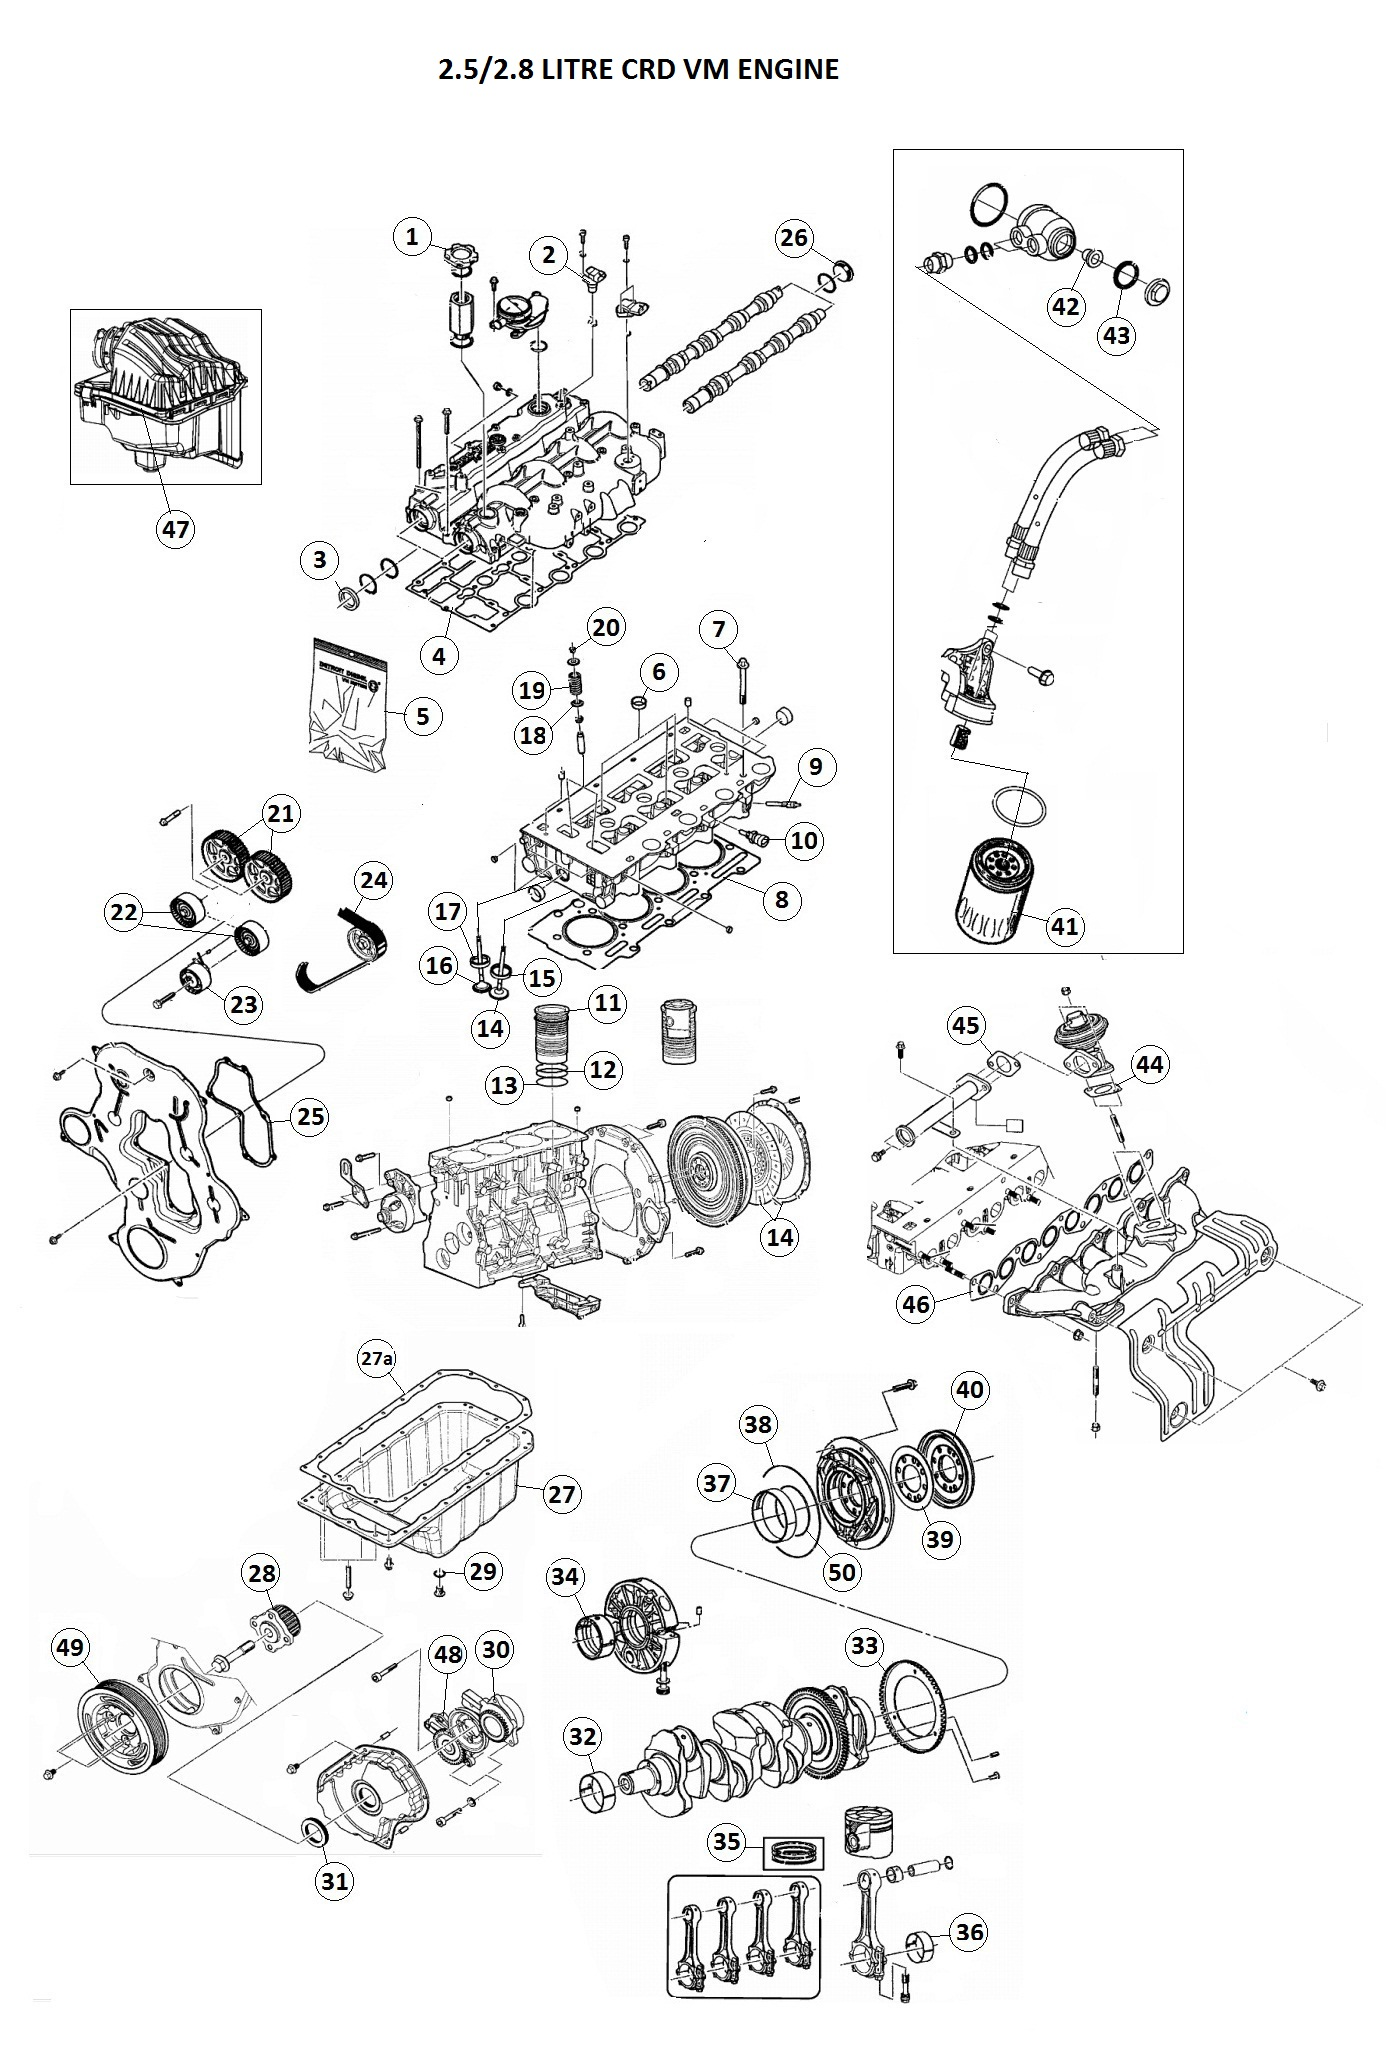 "USAuto | Parts for CHRYSLER on 2001 chrysler town and country engine diagram, 2008 chrysler town and country engine diagram, 2010 dodge grand caravan engine diagram, 2006 dodge grand caravan engine diagram, 2001 dodge caravan water pump diagram, 2000 chrysler town and country engine diagram, chrysler town and country wiring-diagram, chrysler 3.2 timing belt, 2002 chrysler town and country engine diagram, chrysler 300 throttle control location, 3.8 serpentine belt diagram, dodge nitro external diagram, chrysler town and country serpentine belt diagram, chrysler 3.3 engine diagram, 1996 dodge stealth 30"" single overhead cam diagram, 2002 dodge grand caravan engine diagram, chrysler parts diagram, 2005 chrysler town and country engine diagram, lexus es 300 engine diagram, dodge caravan 3.8l engine diagram,"